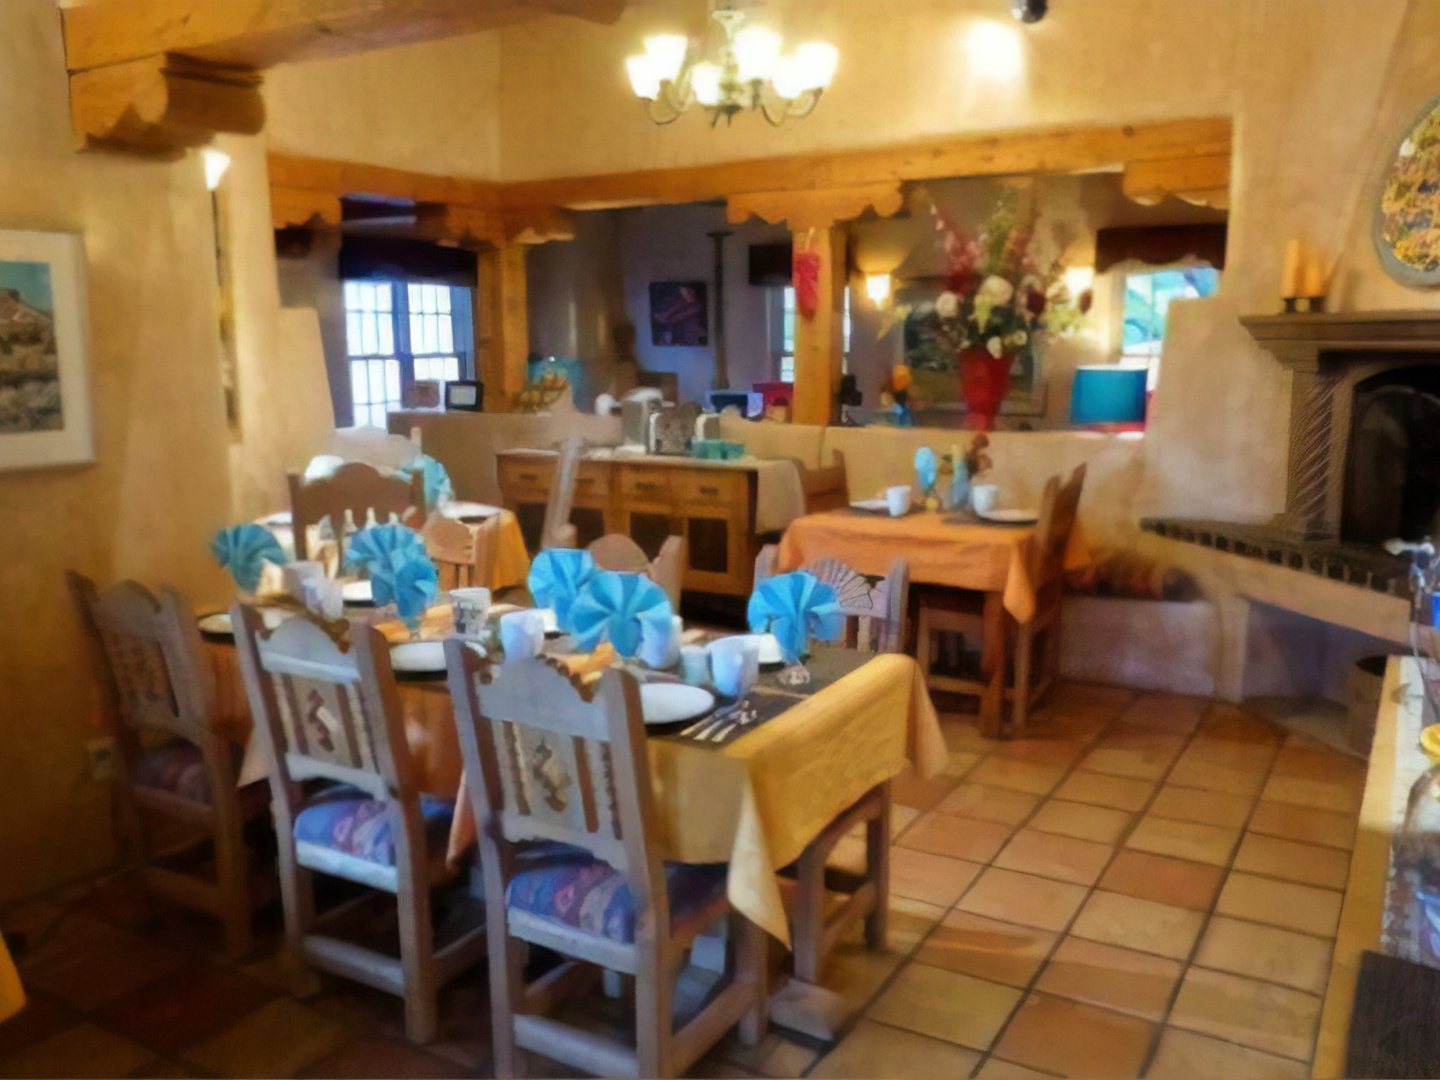 A kitchen with a dining room table at El Farolito Bed & Breakfast.